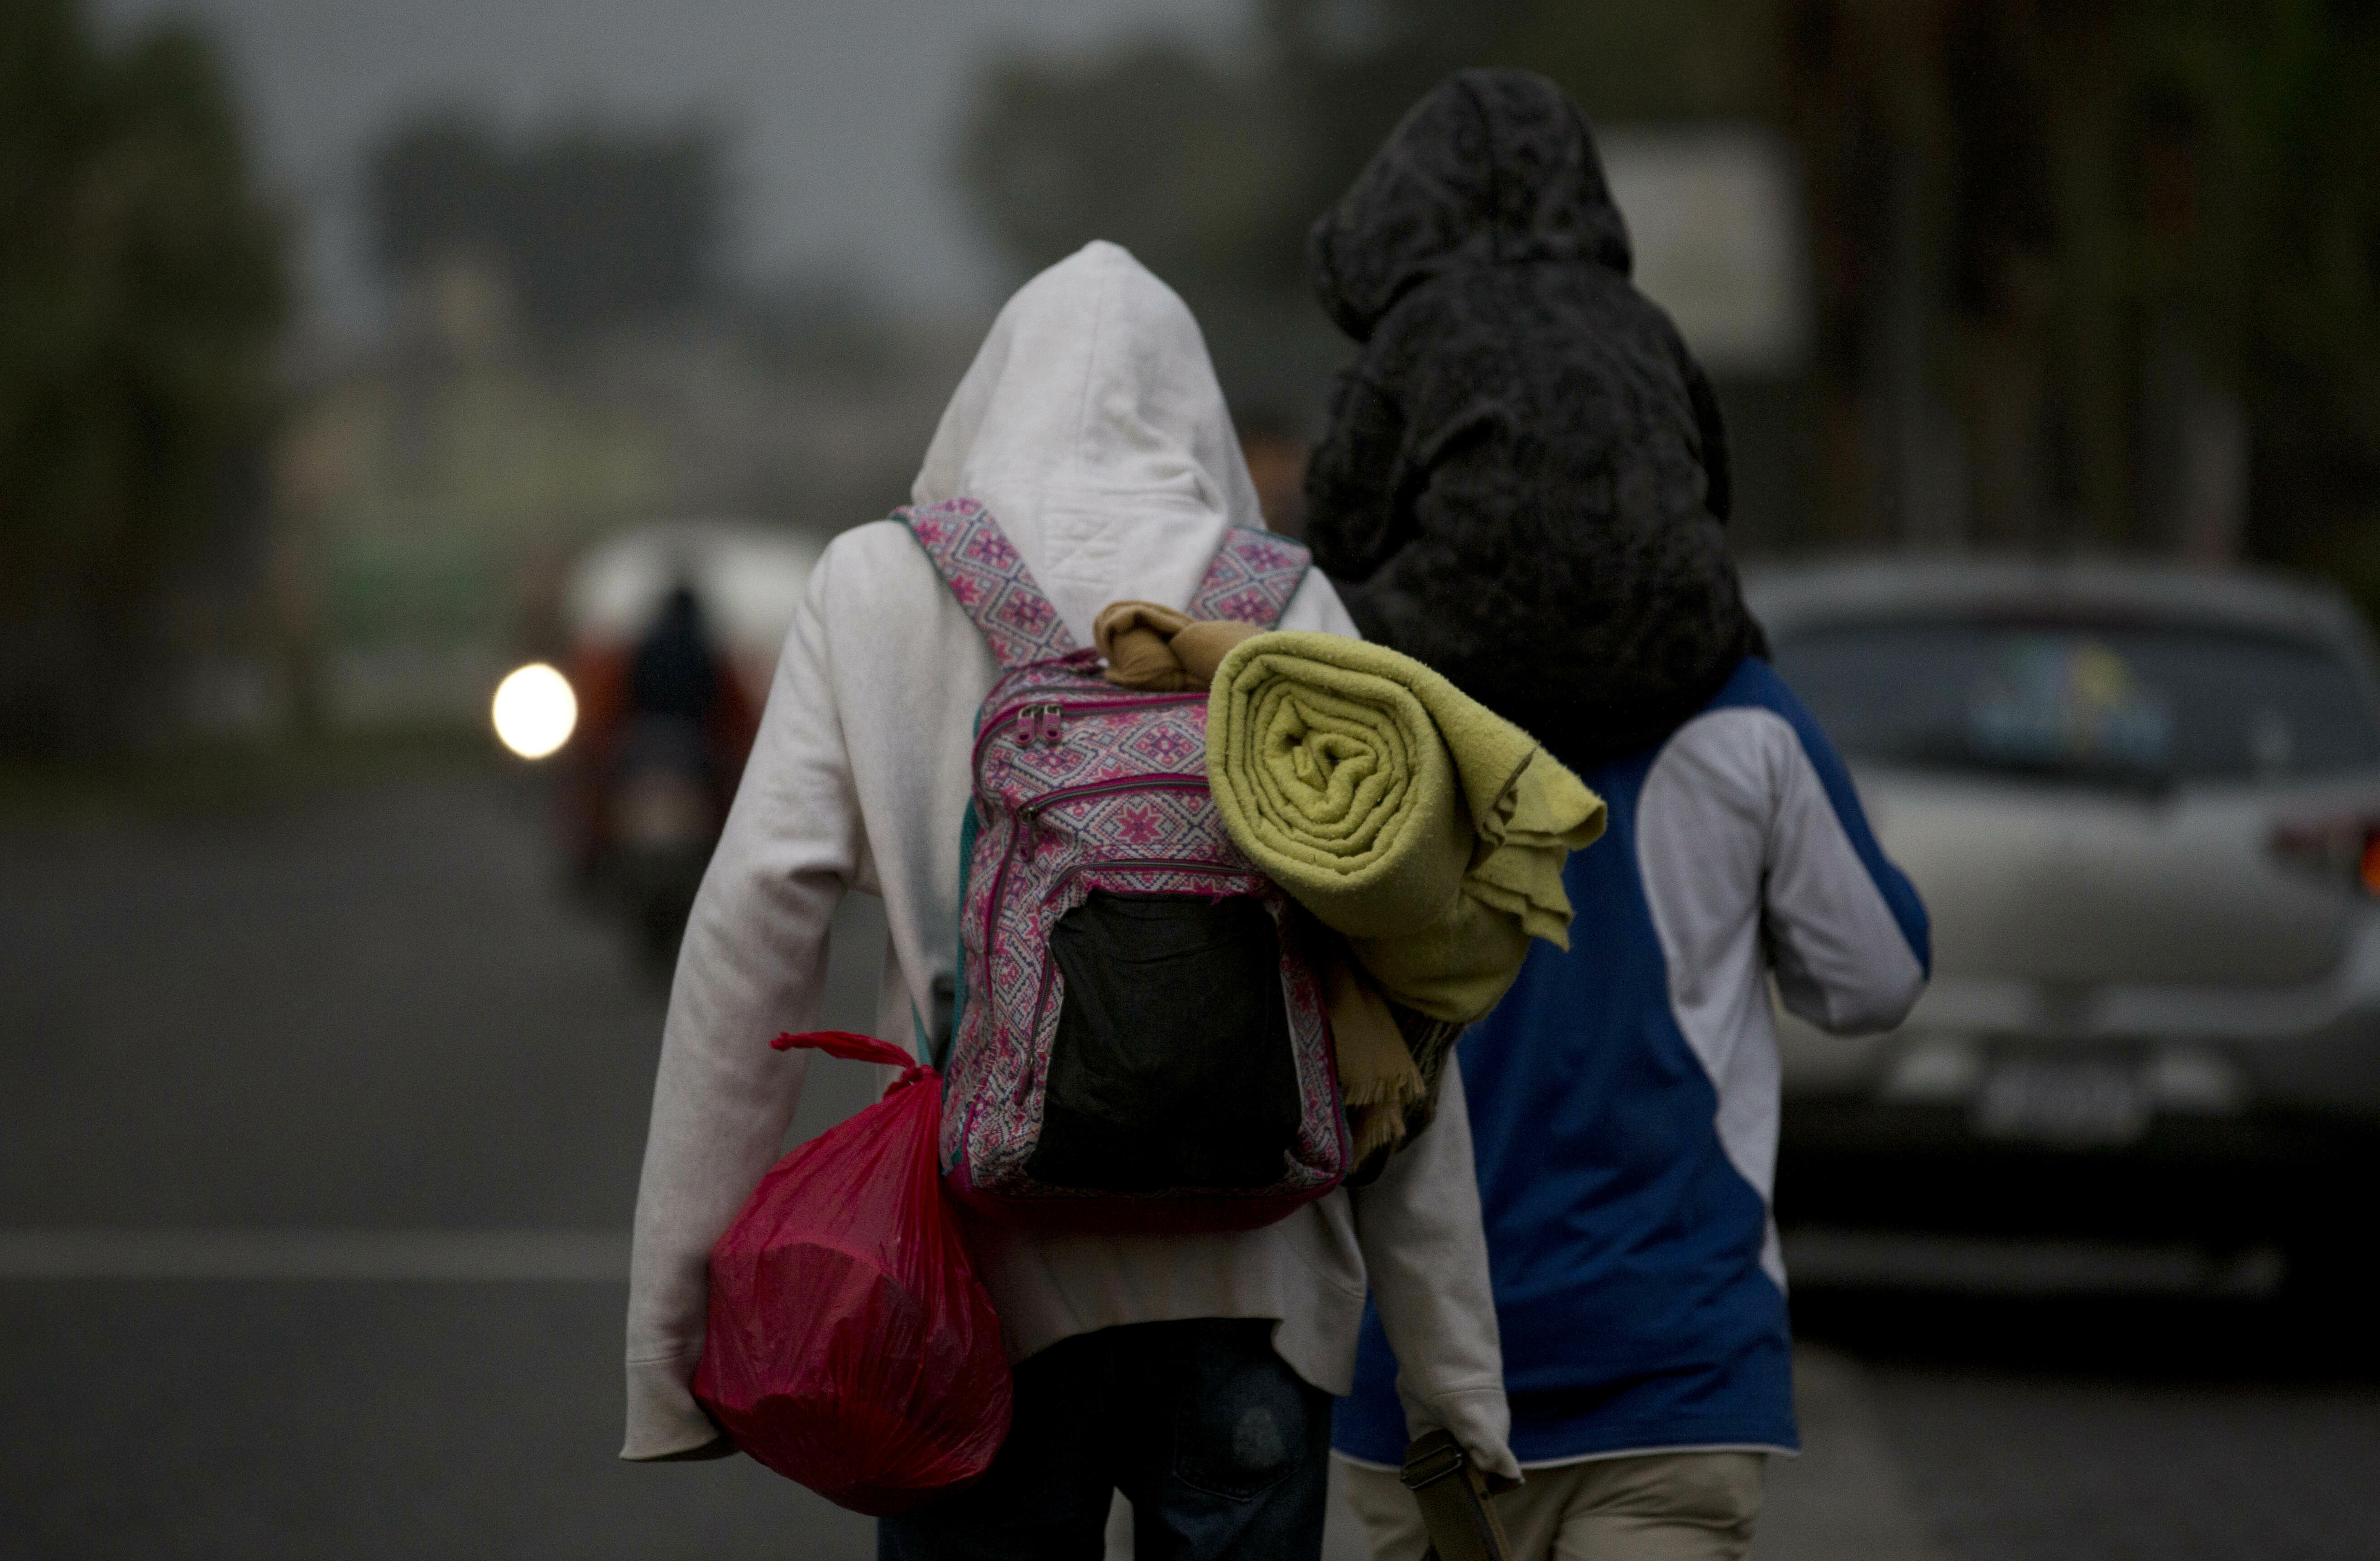 Honduran migrants carry their belongings on their backs as they walk at dawn along the roadside through Esquipulas, Guatemala, as they make their way toward the U.S. border, Wednesday, Jan. 16, 2019. The latest caravan of Honduran migrants hoping to reach the U.S. has crossed into Guatemala. (AP Photo/Moises Castillo)